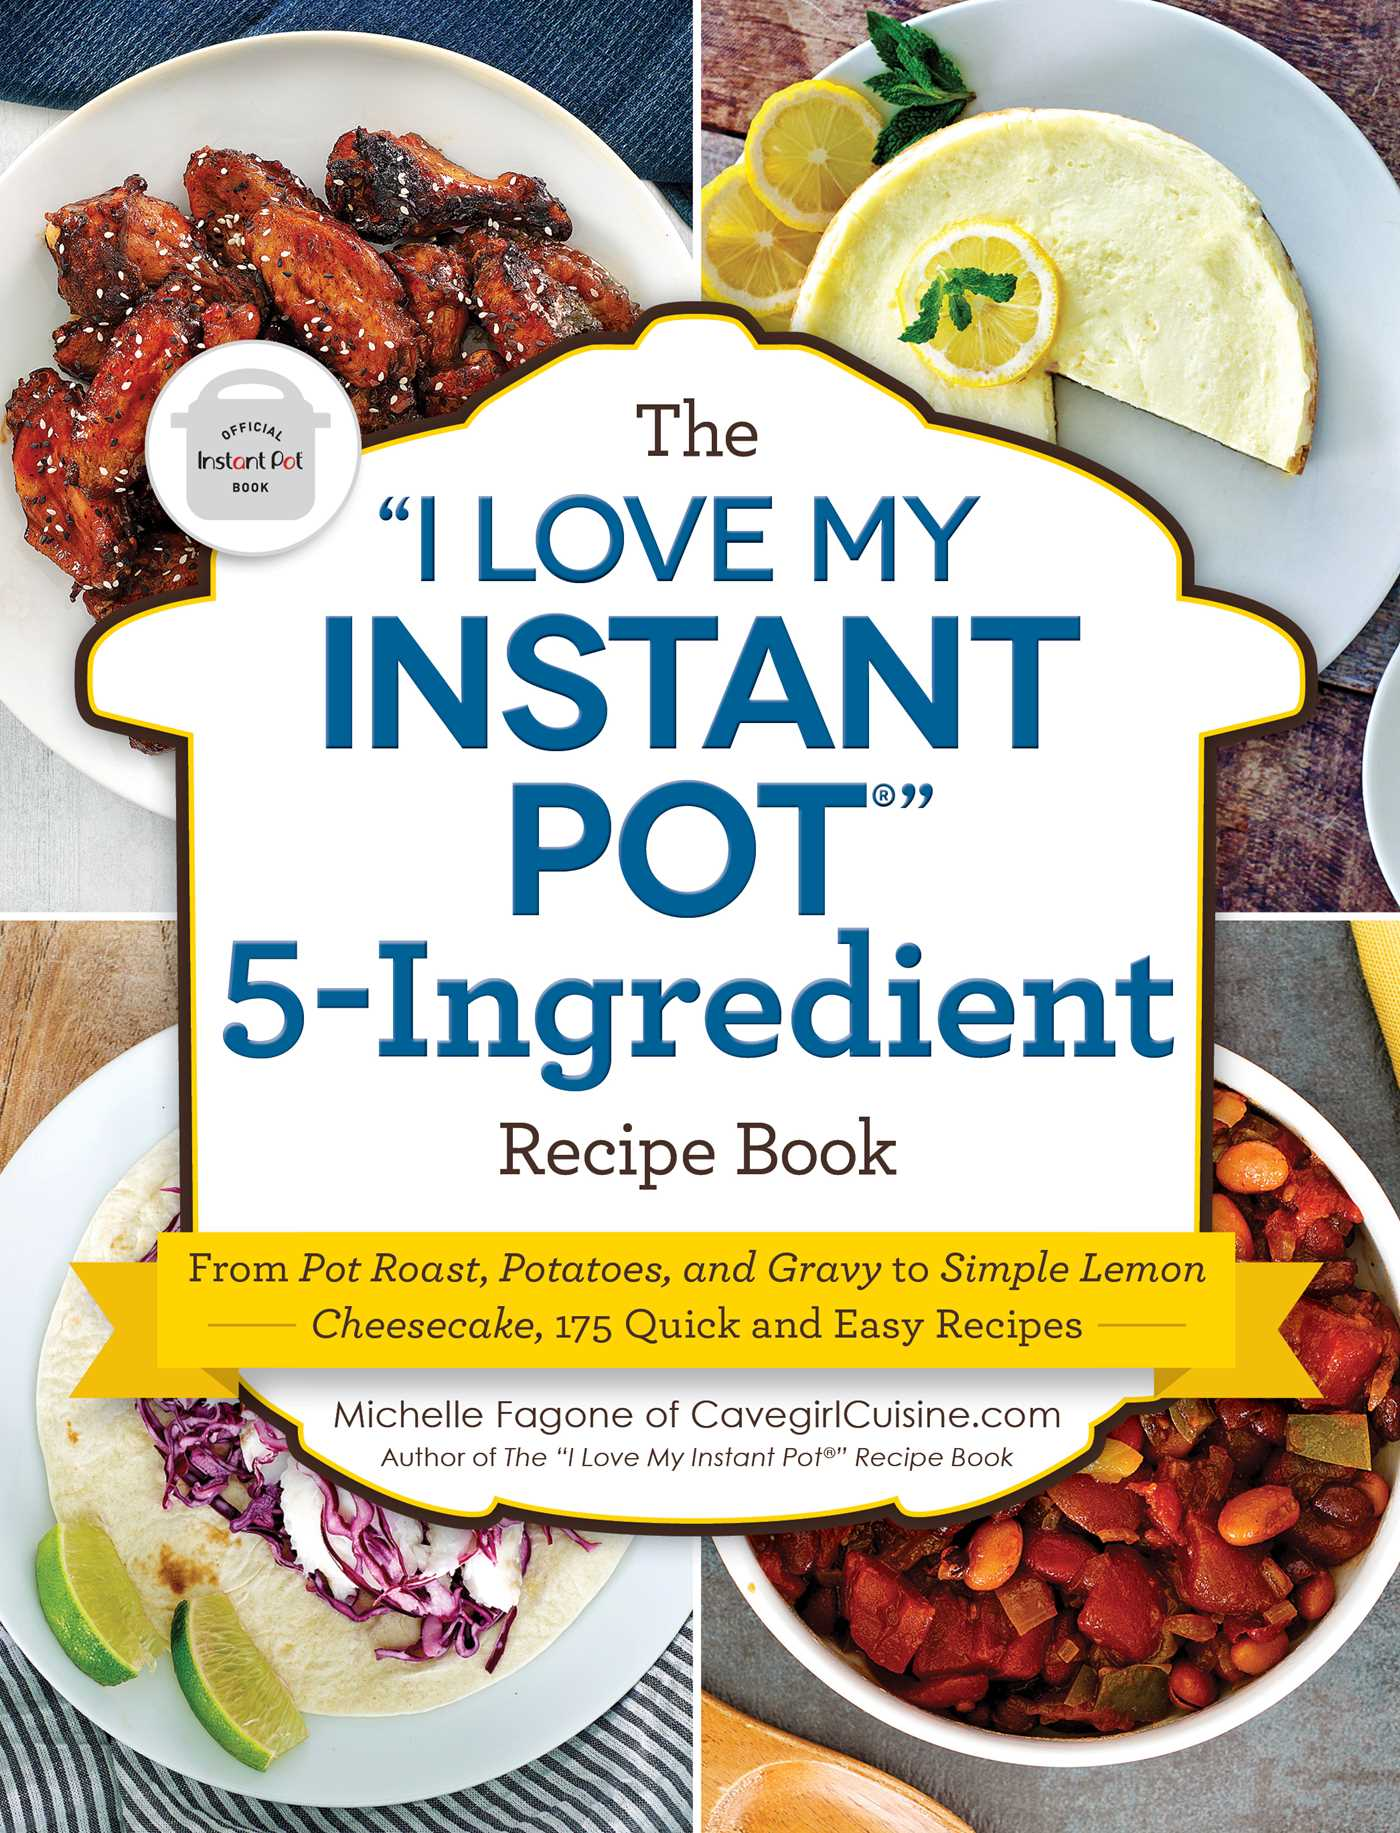 "The ""I Love My Instant Pot®"" 5-Ingredient Recipe Book: From Pot Roast, Potatoes, and Gravy to Simple Lemon Cheesecake, 175 Quick and Easy Recipes"